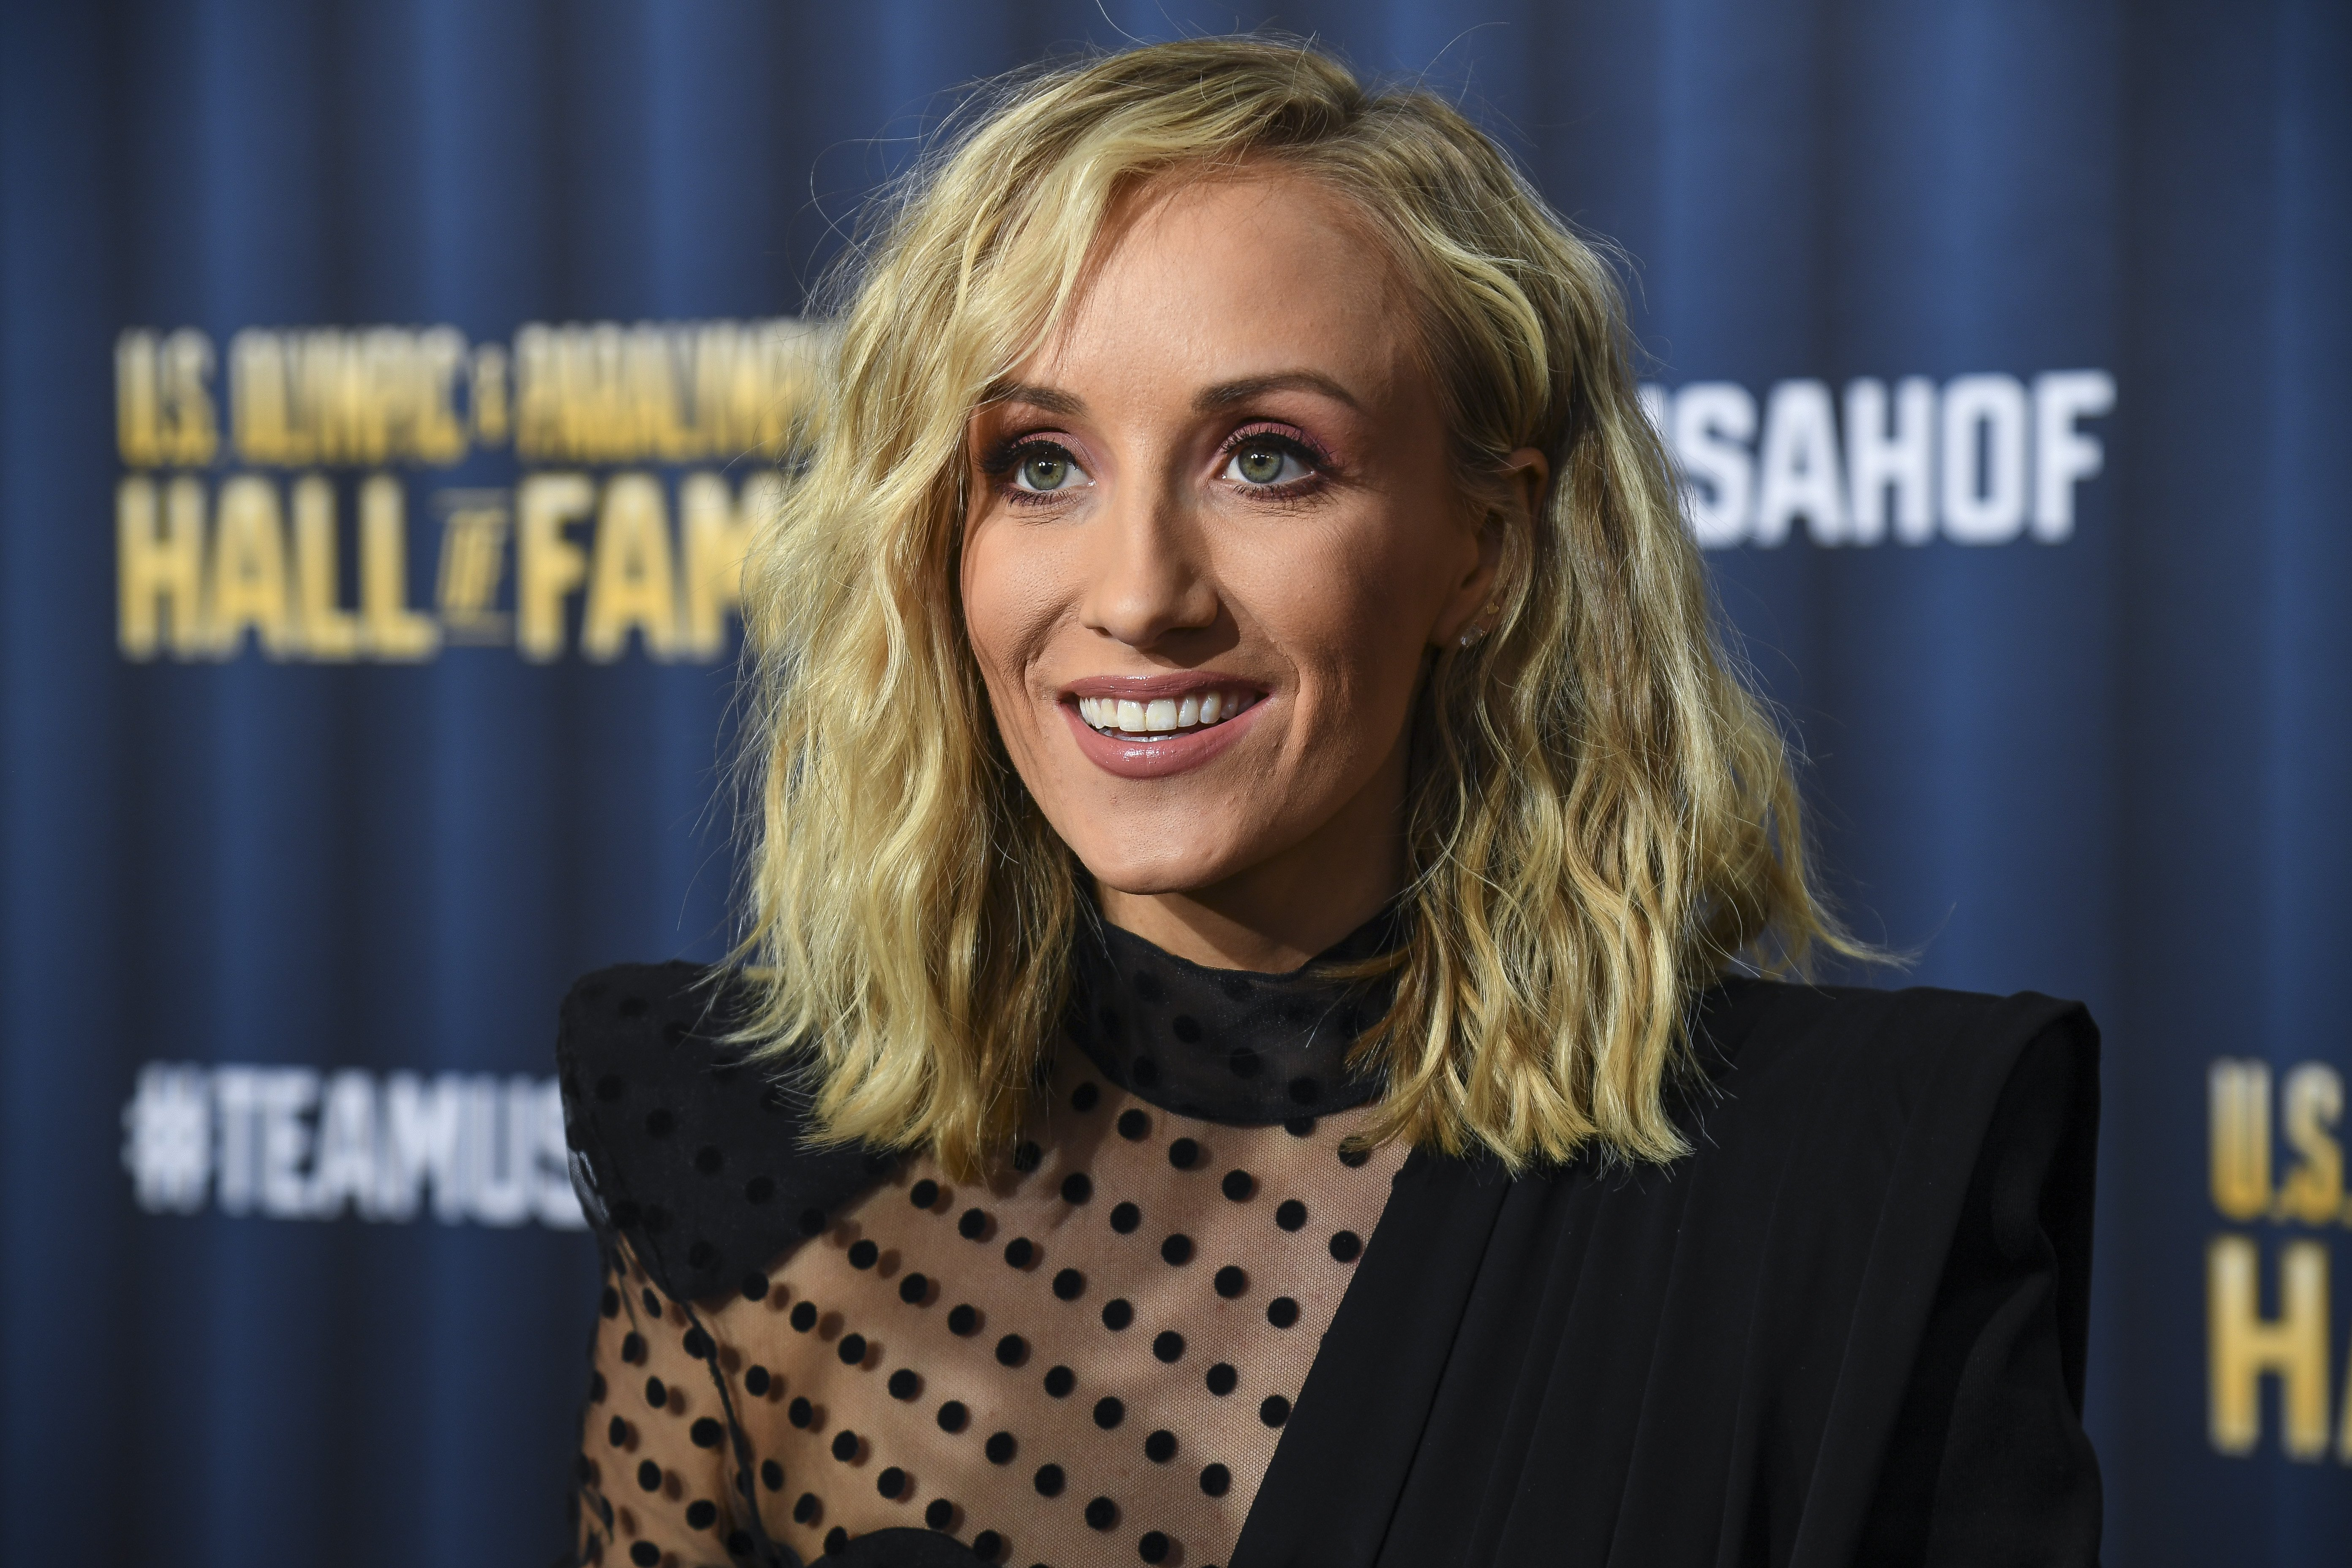 Nastia Liukin pictured at the U.S. Olympic Hall of Fame Class of 2019 Induction Ceremony | Photo: Getty Images